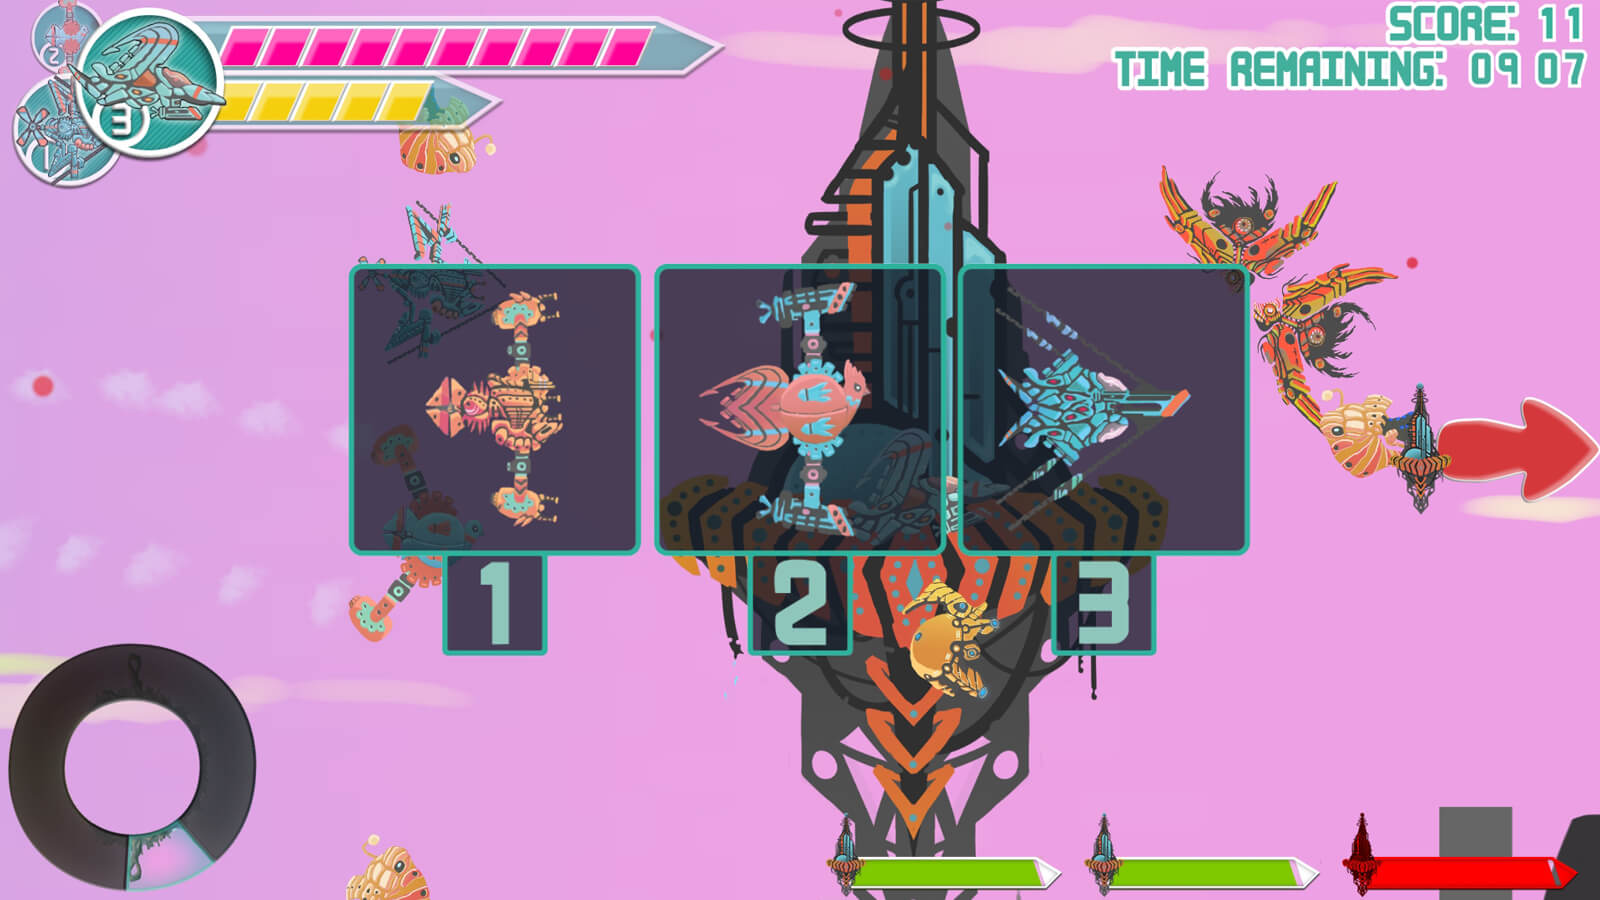 A selection screen showing the three alien spaceships the player can choose from.